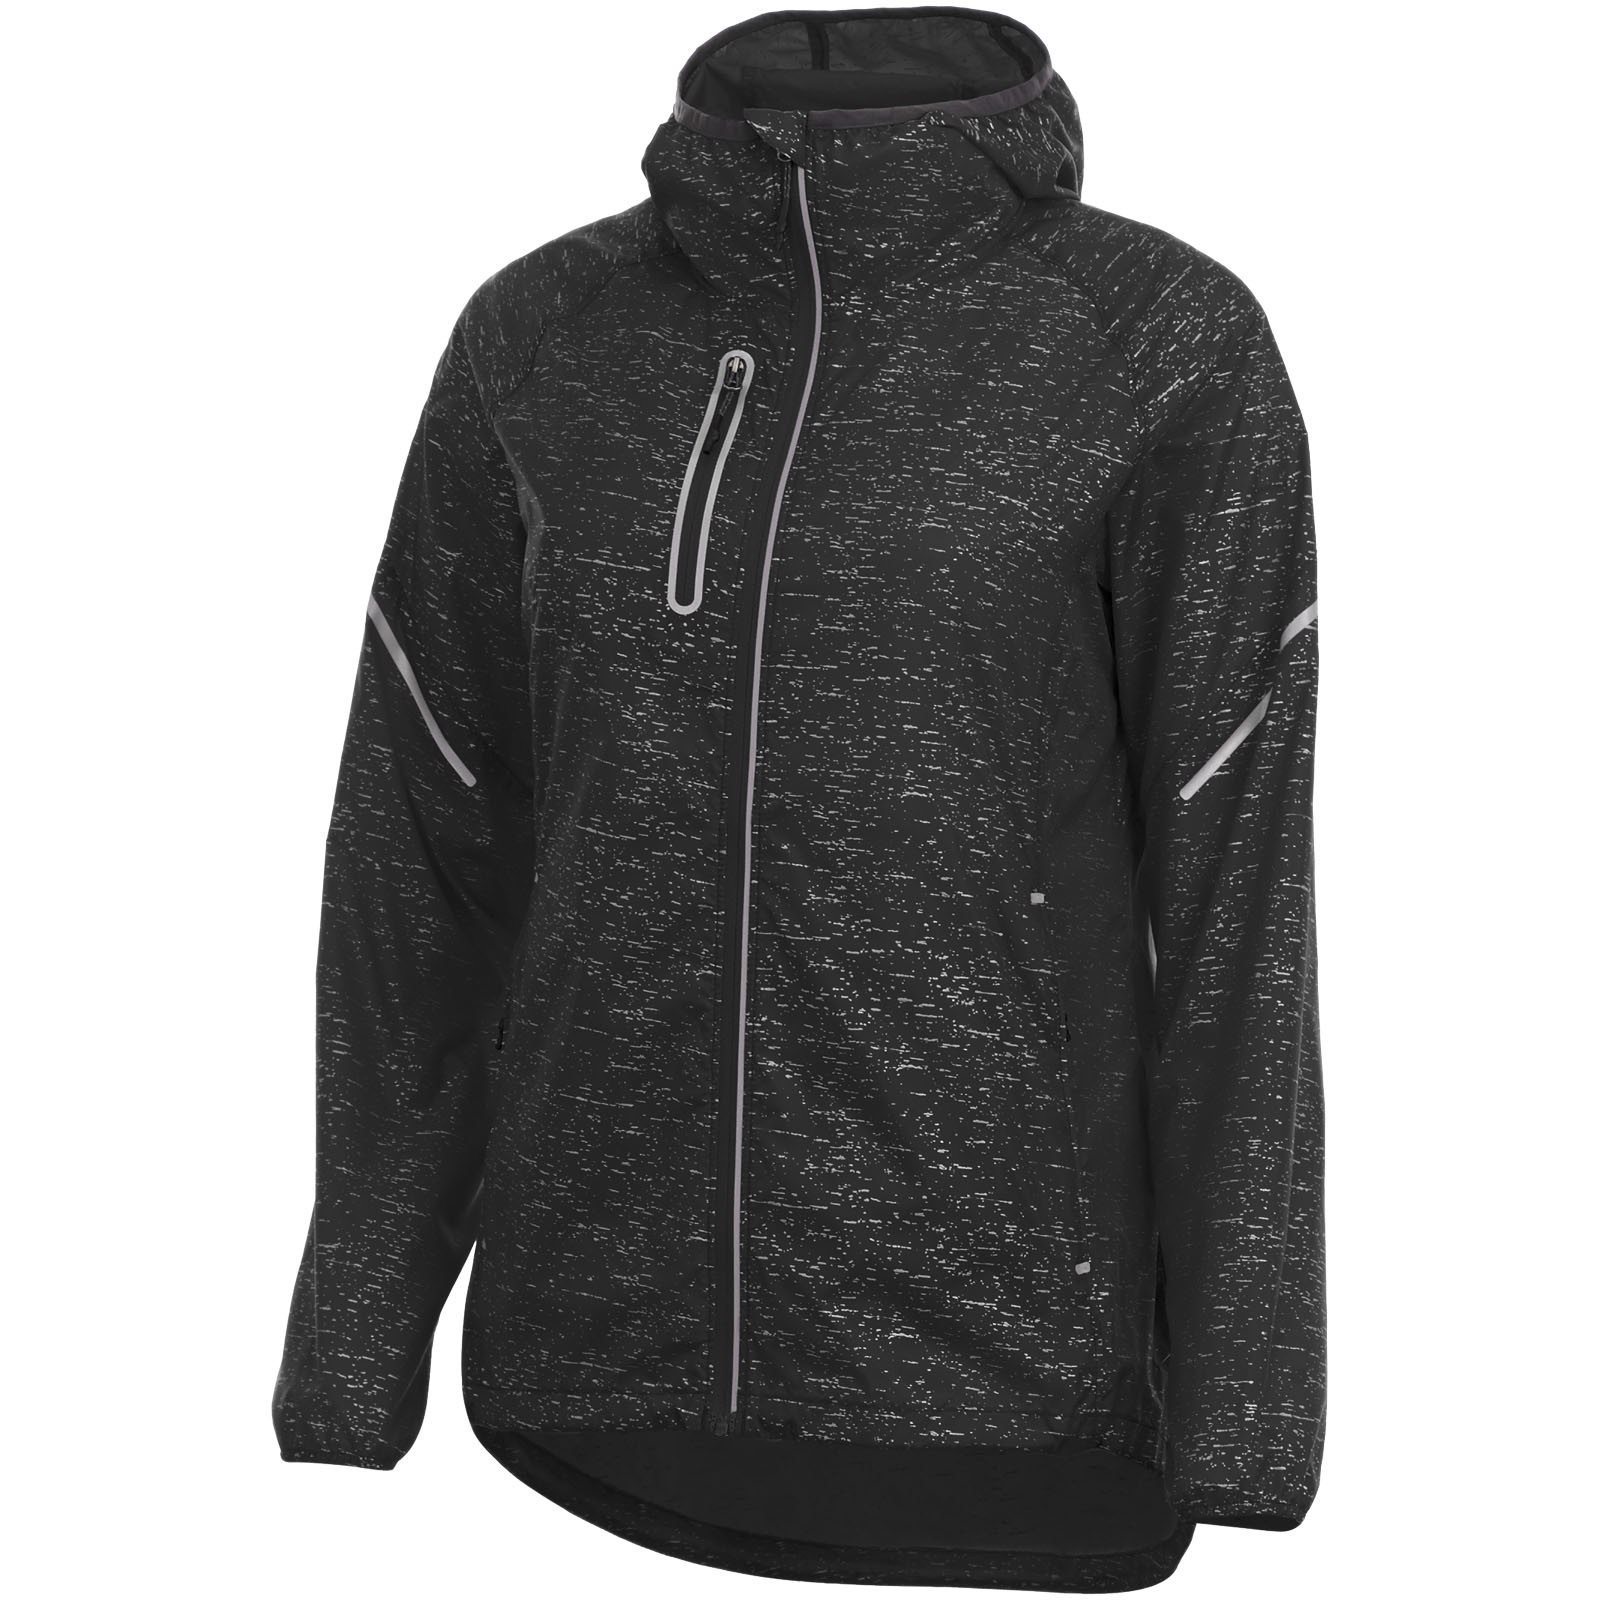 Signal reflective packable ladies jacket - Solid black / XS